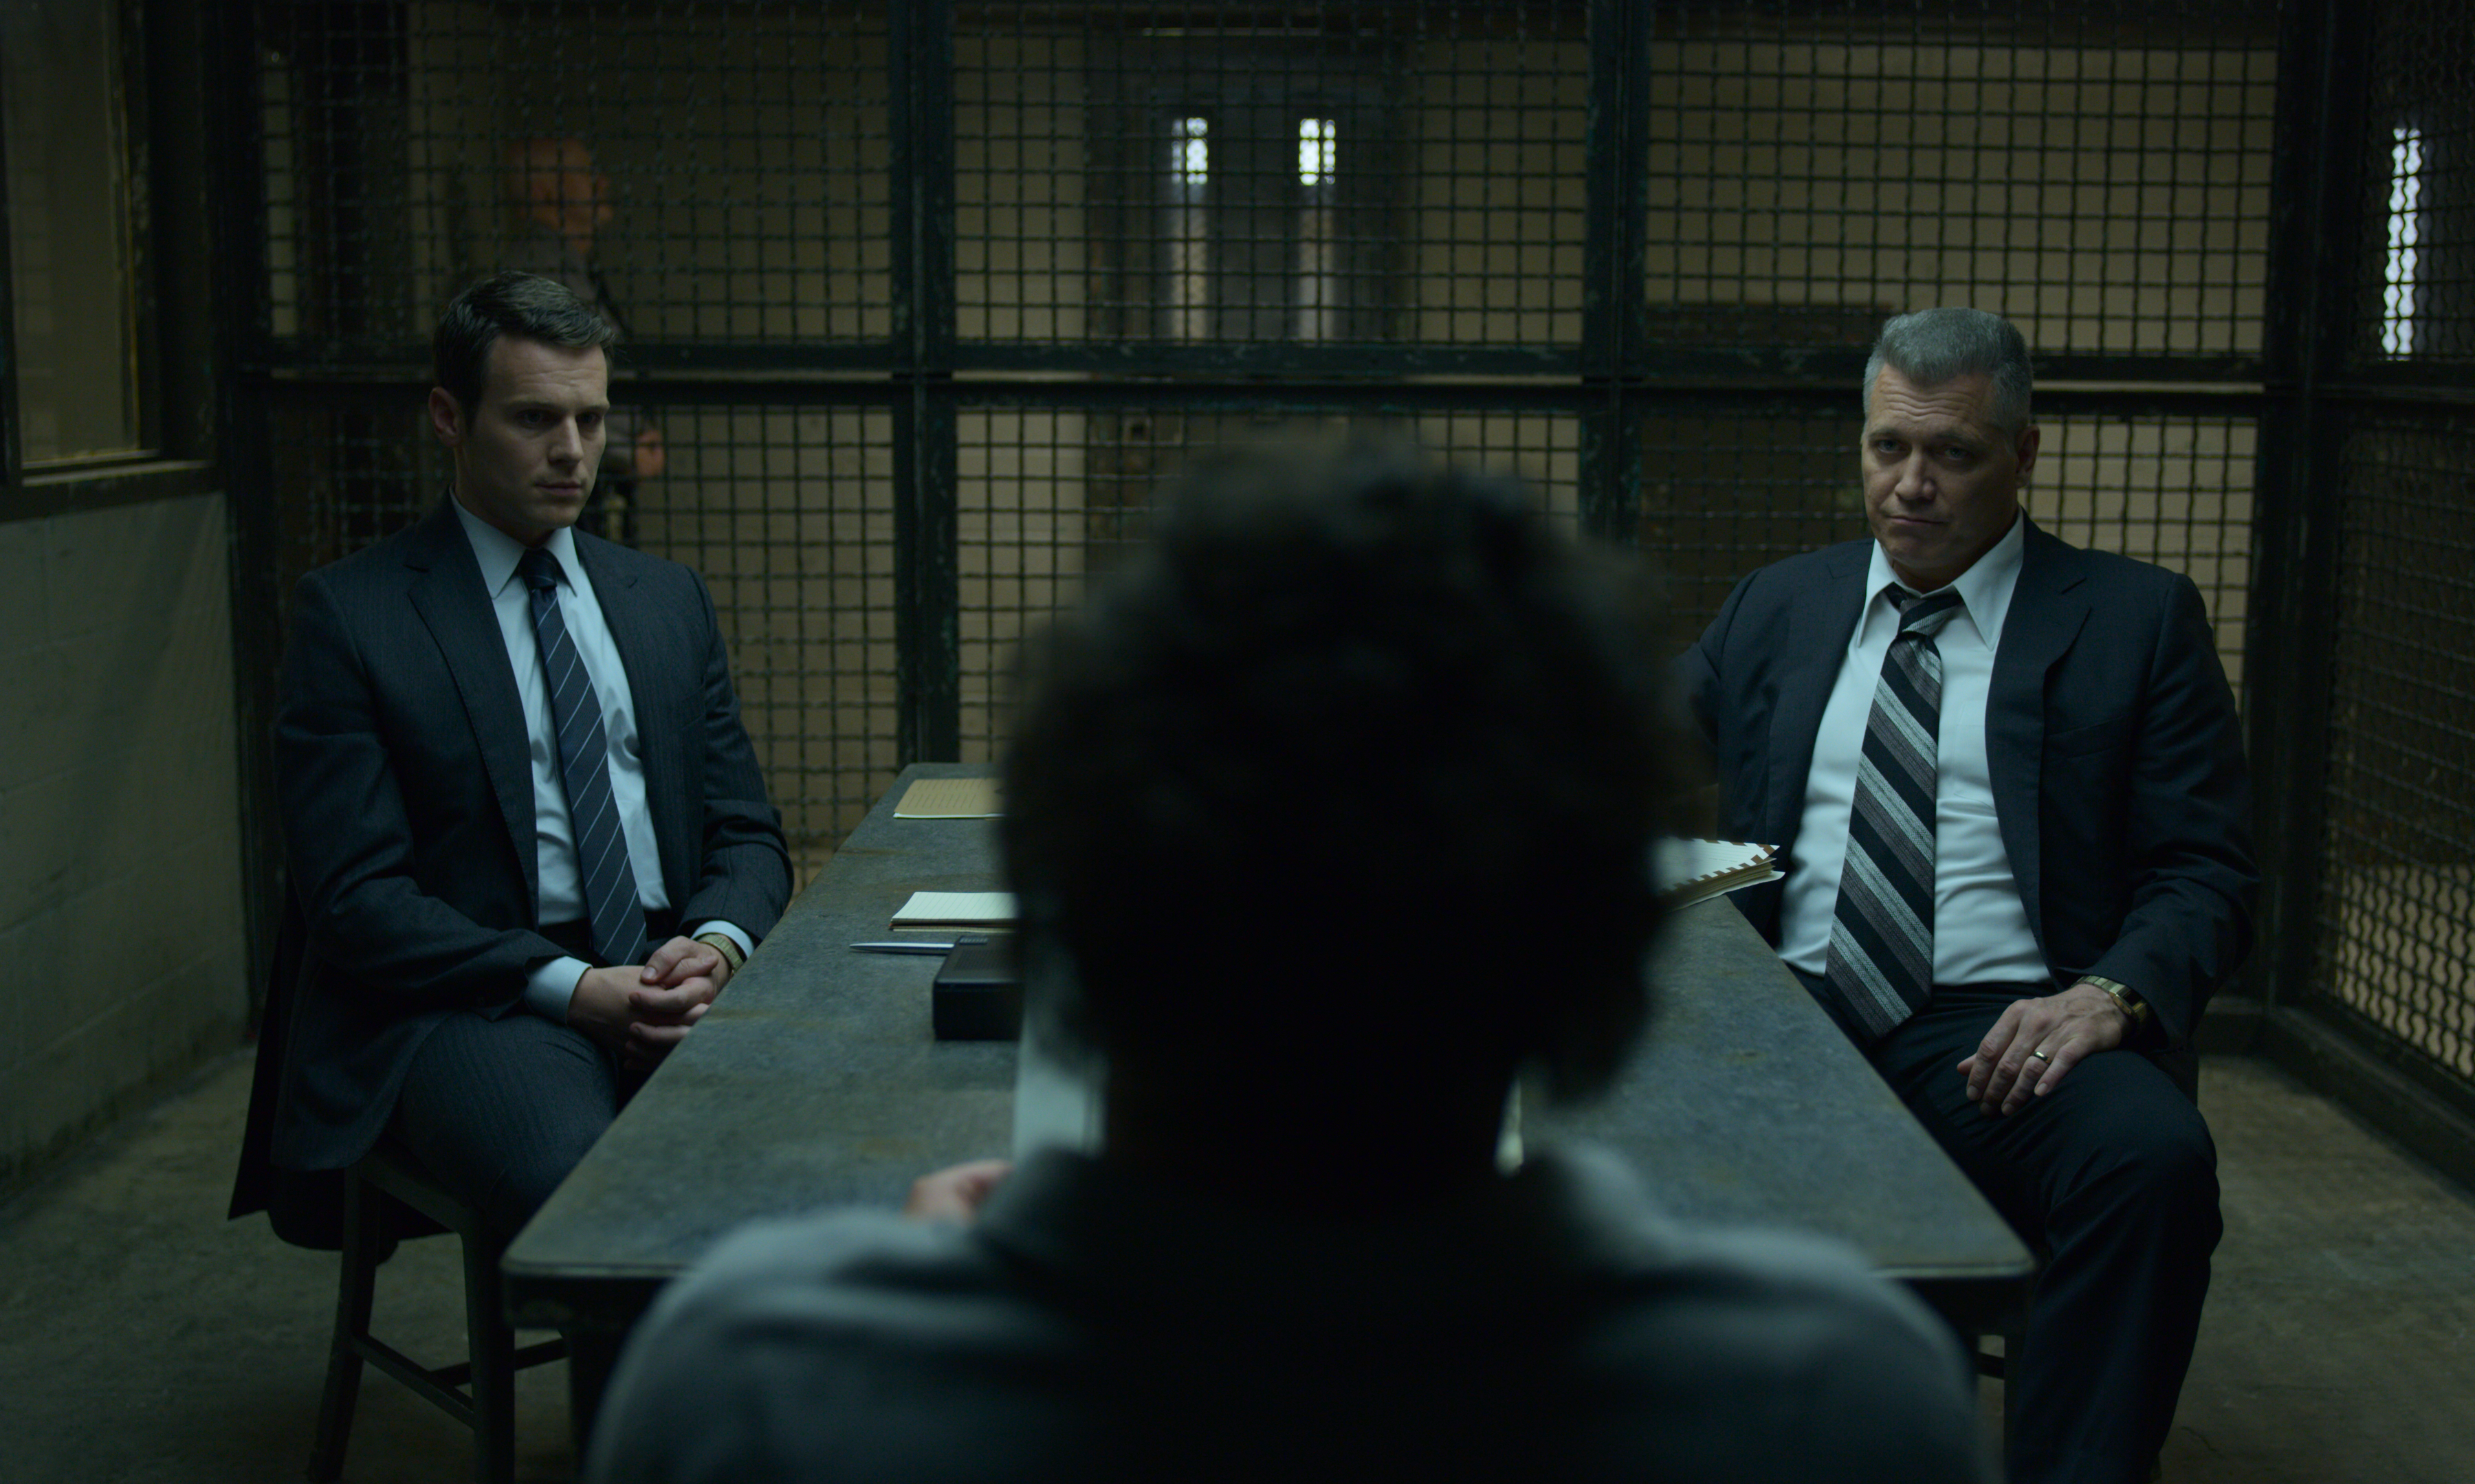 Charles Manson Appears in the First Teaser Trailer for 'Mindhunter' Season 2